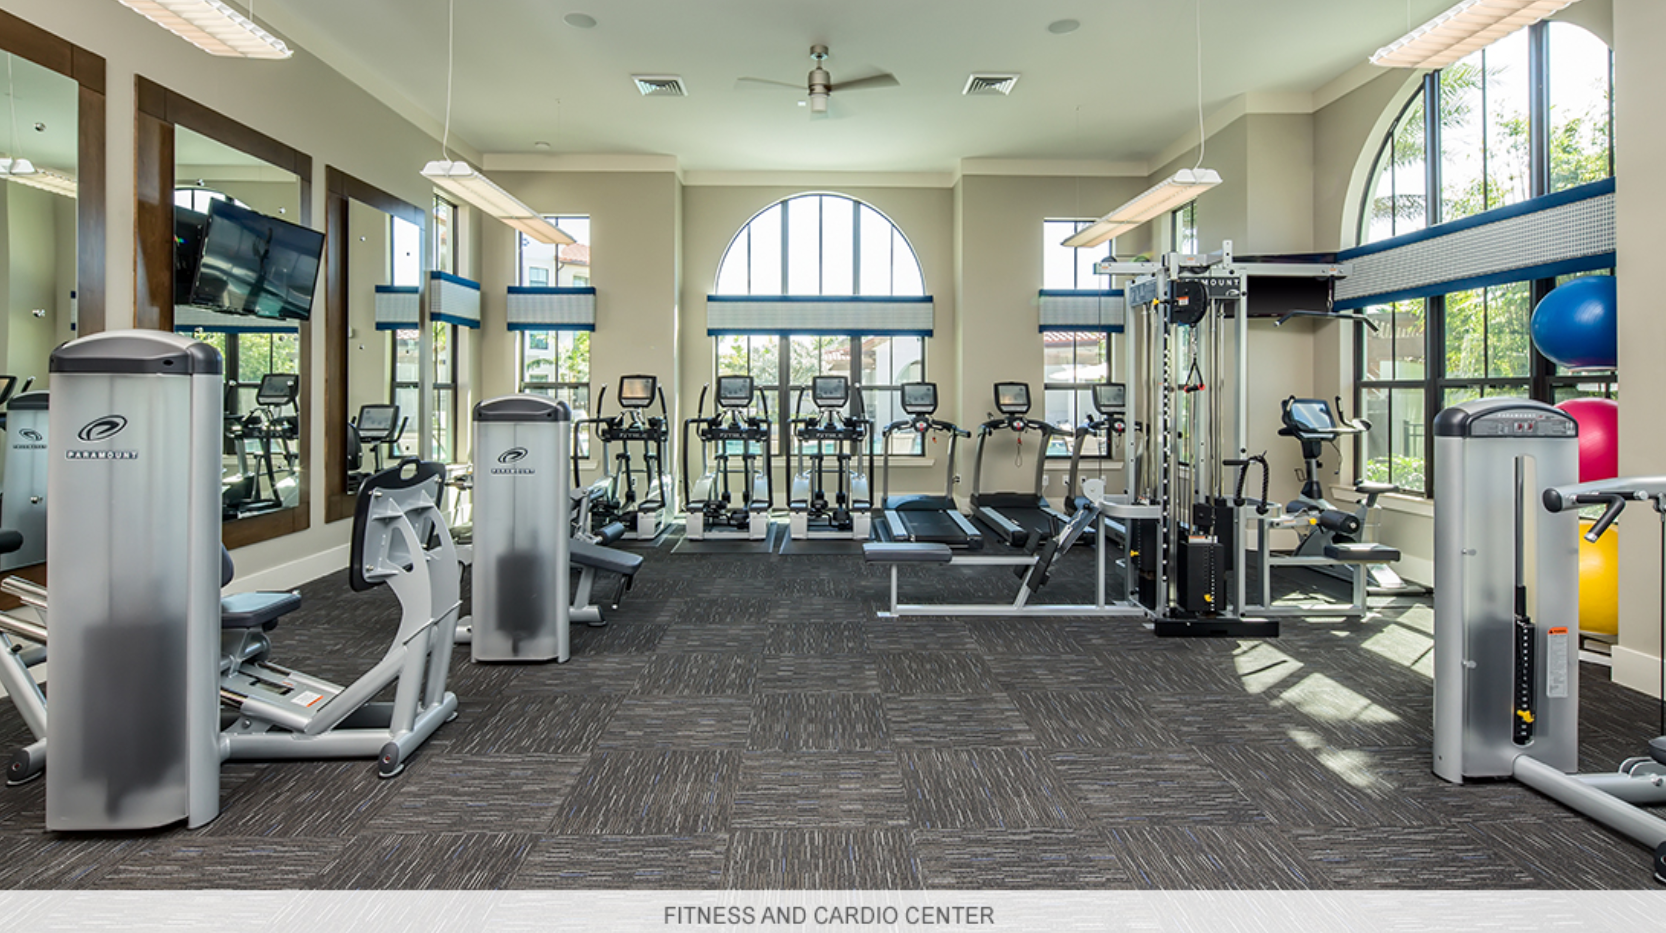 Fitness and cardio center.